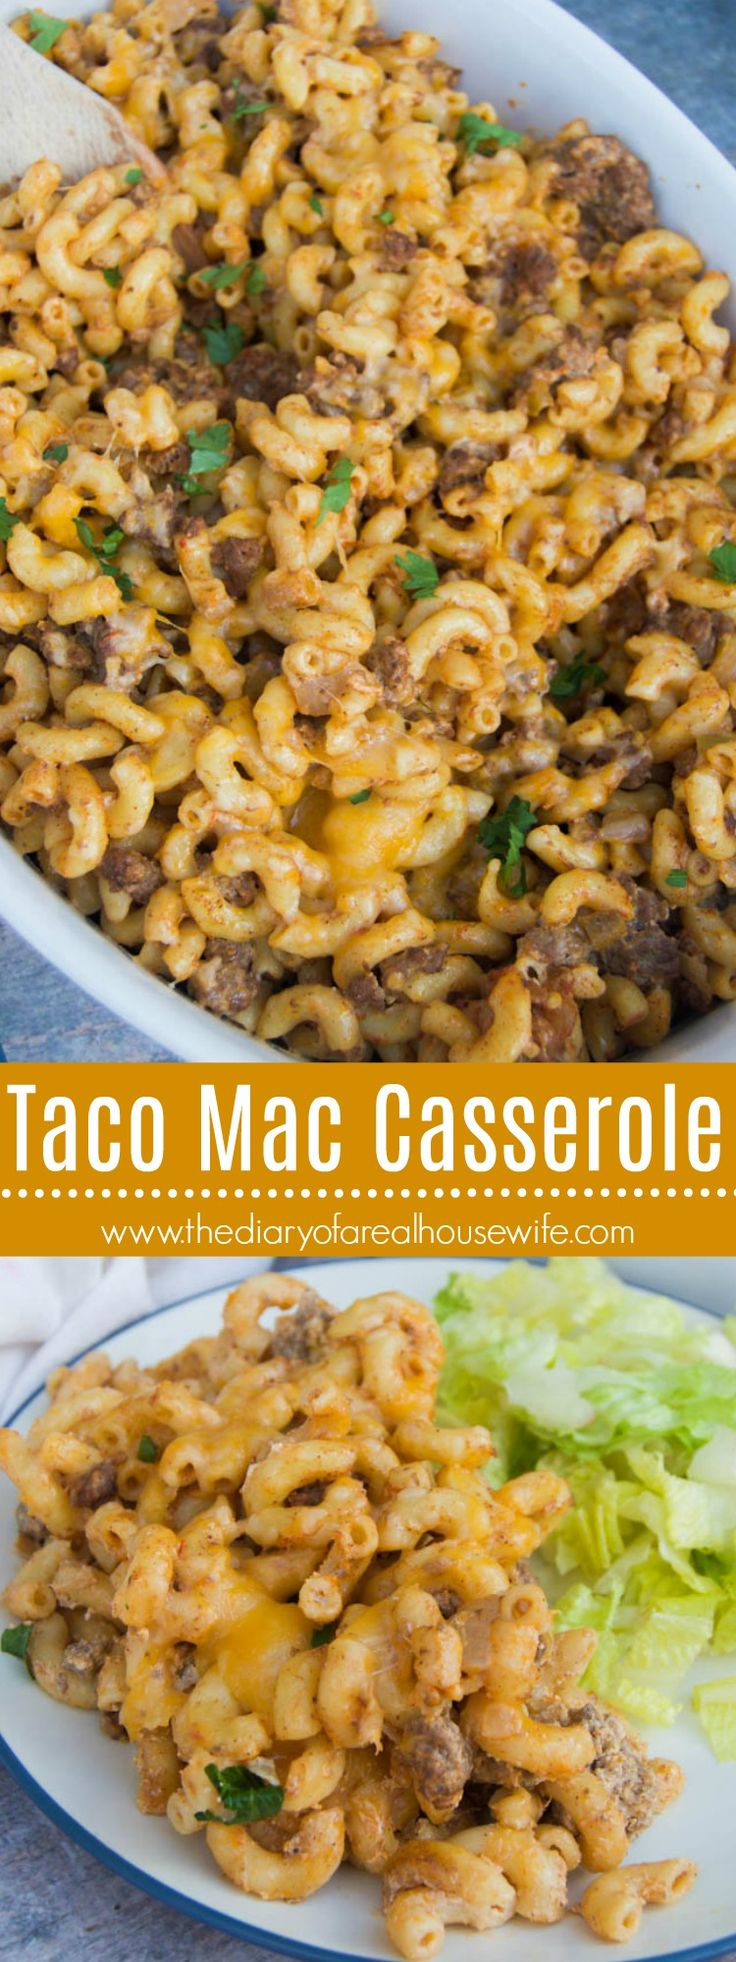 Taco Mac Casserole. Simple and easy recipe for the family. Make this one for dinner soon.